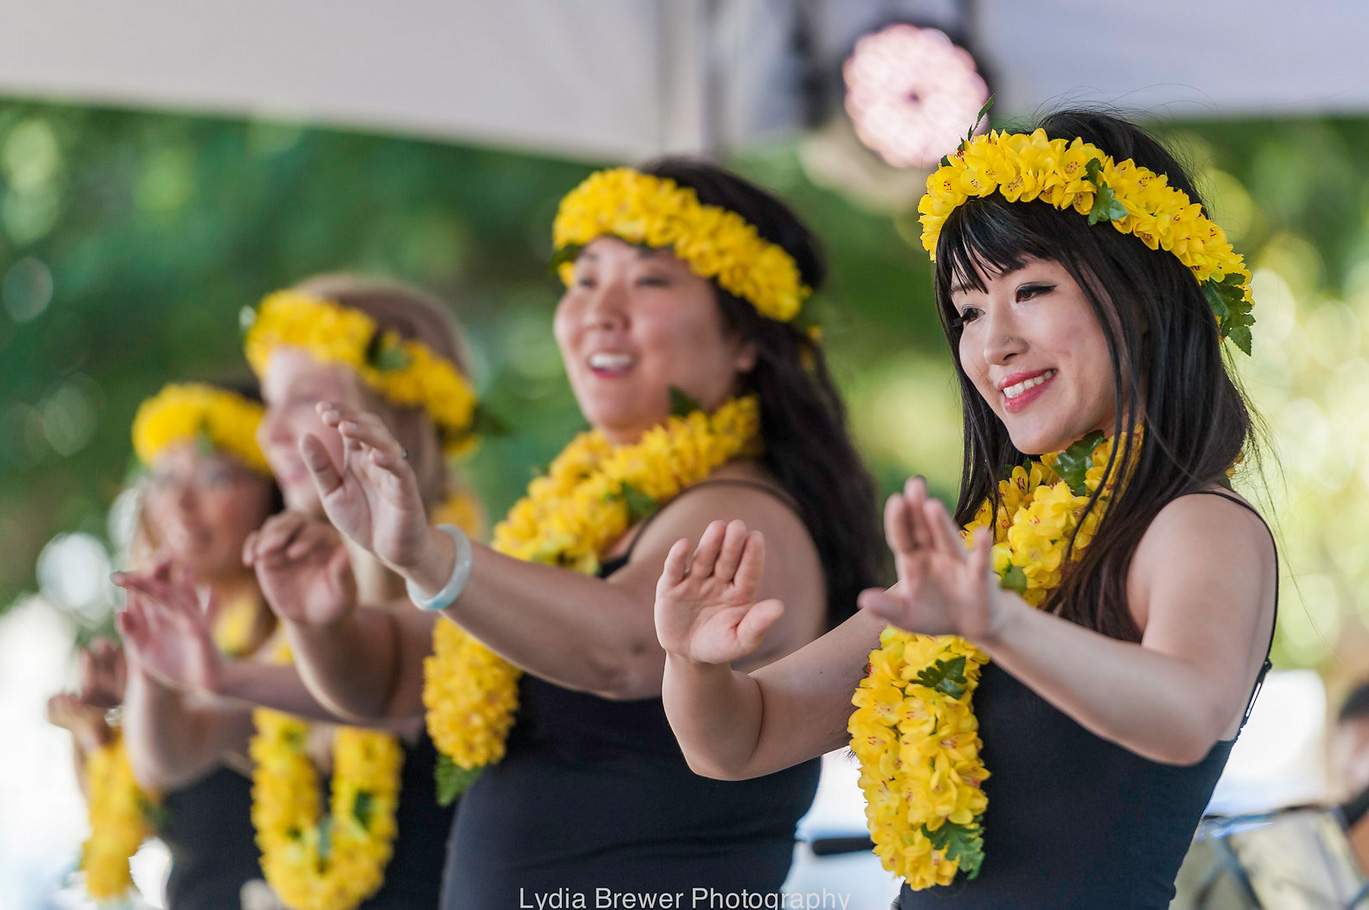 SunshineFromPolynesia-hula-dancers-yellow-flowers